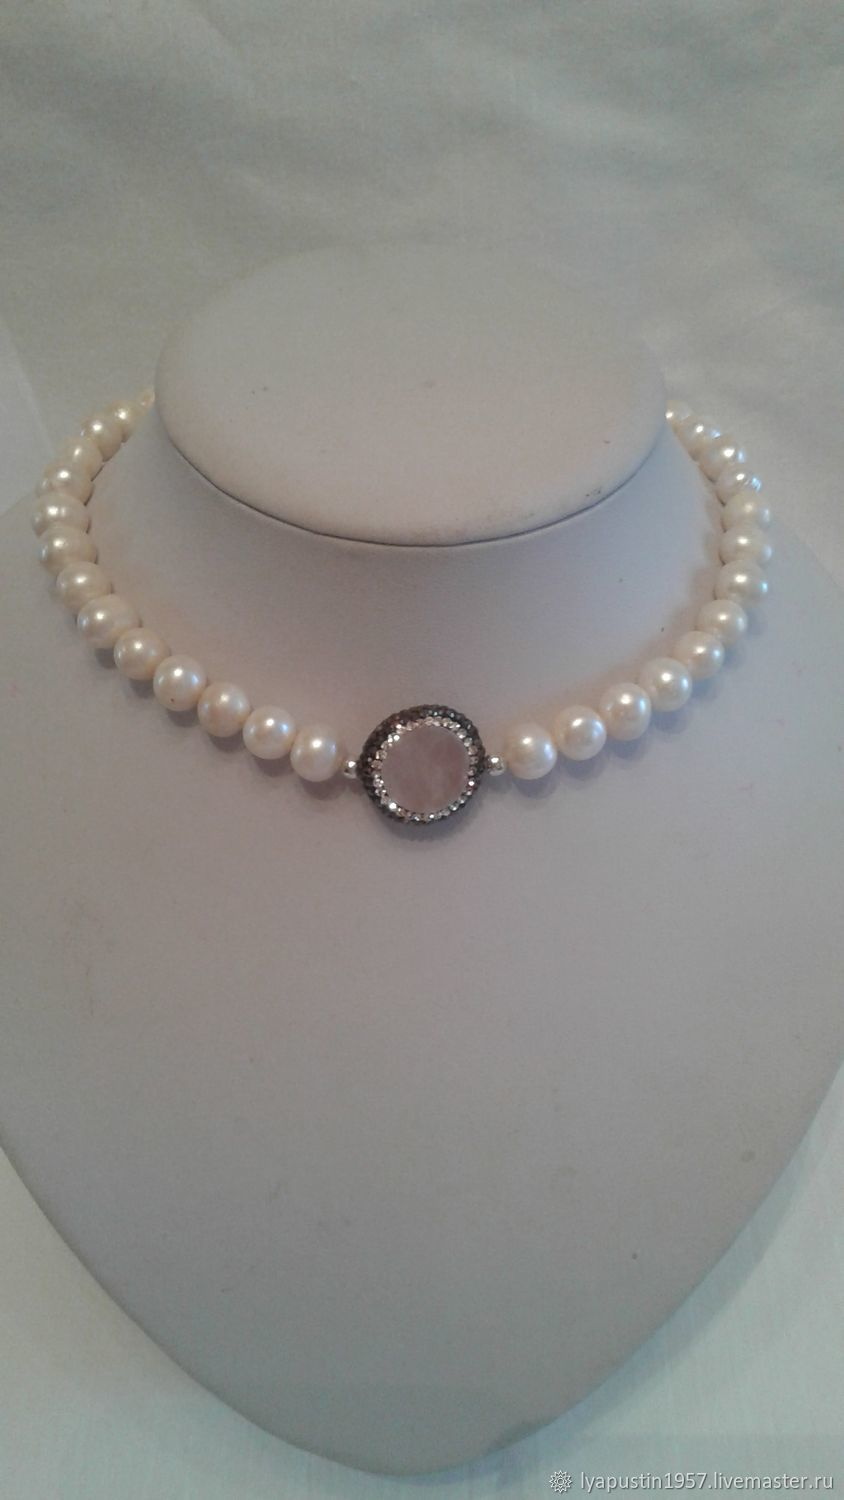 Necklace - choker made of pearls and rose quartz, Chokers, Moscow,  Фото №1